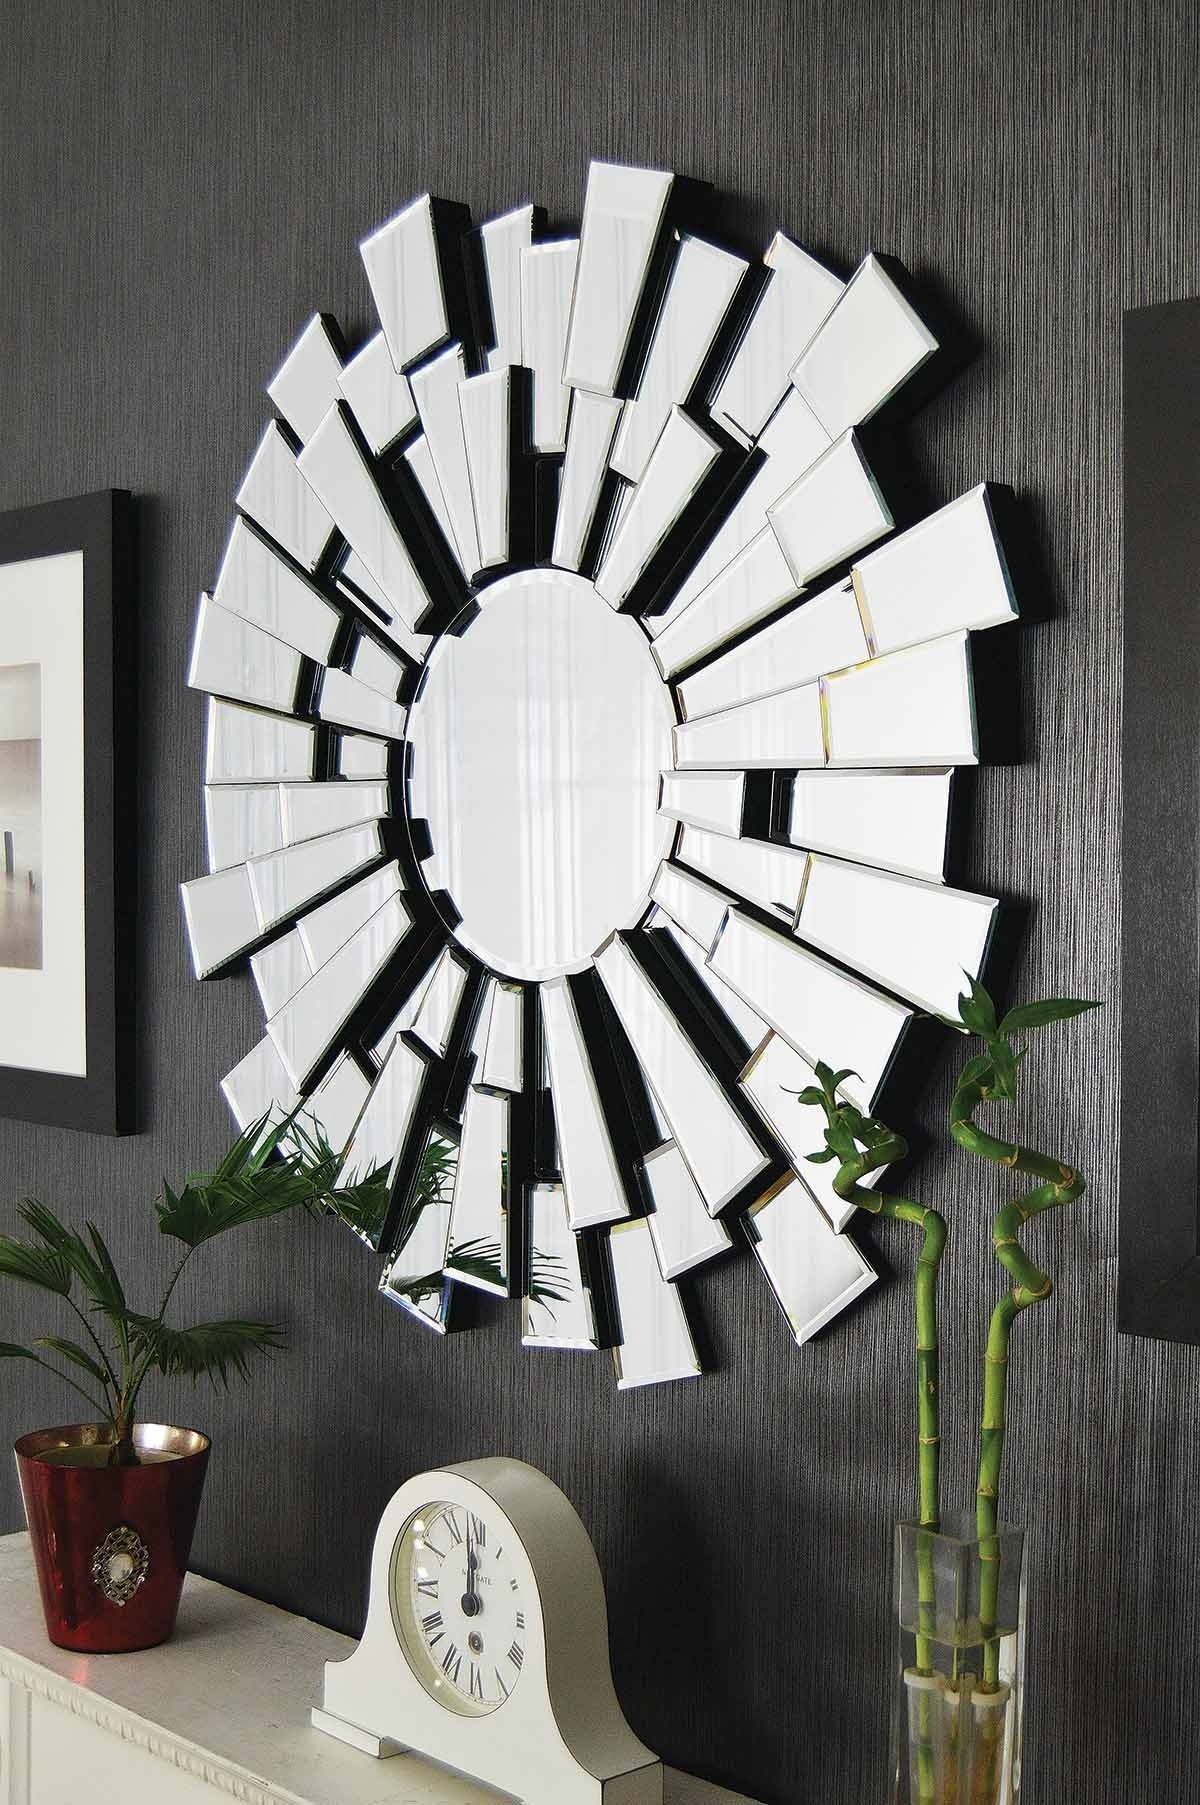 Big Wall Mirrors With Circle Mirrors For Walls 3 Things You Need With Mirror Circles For Walls (Image 5 of 15)